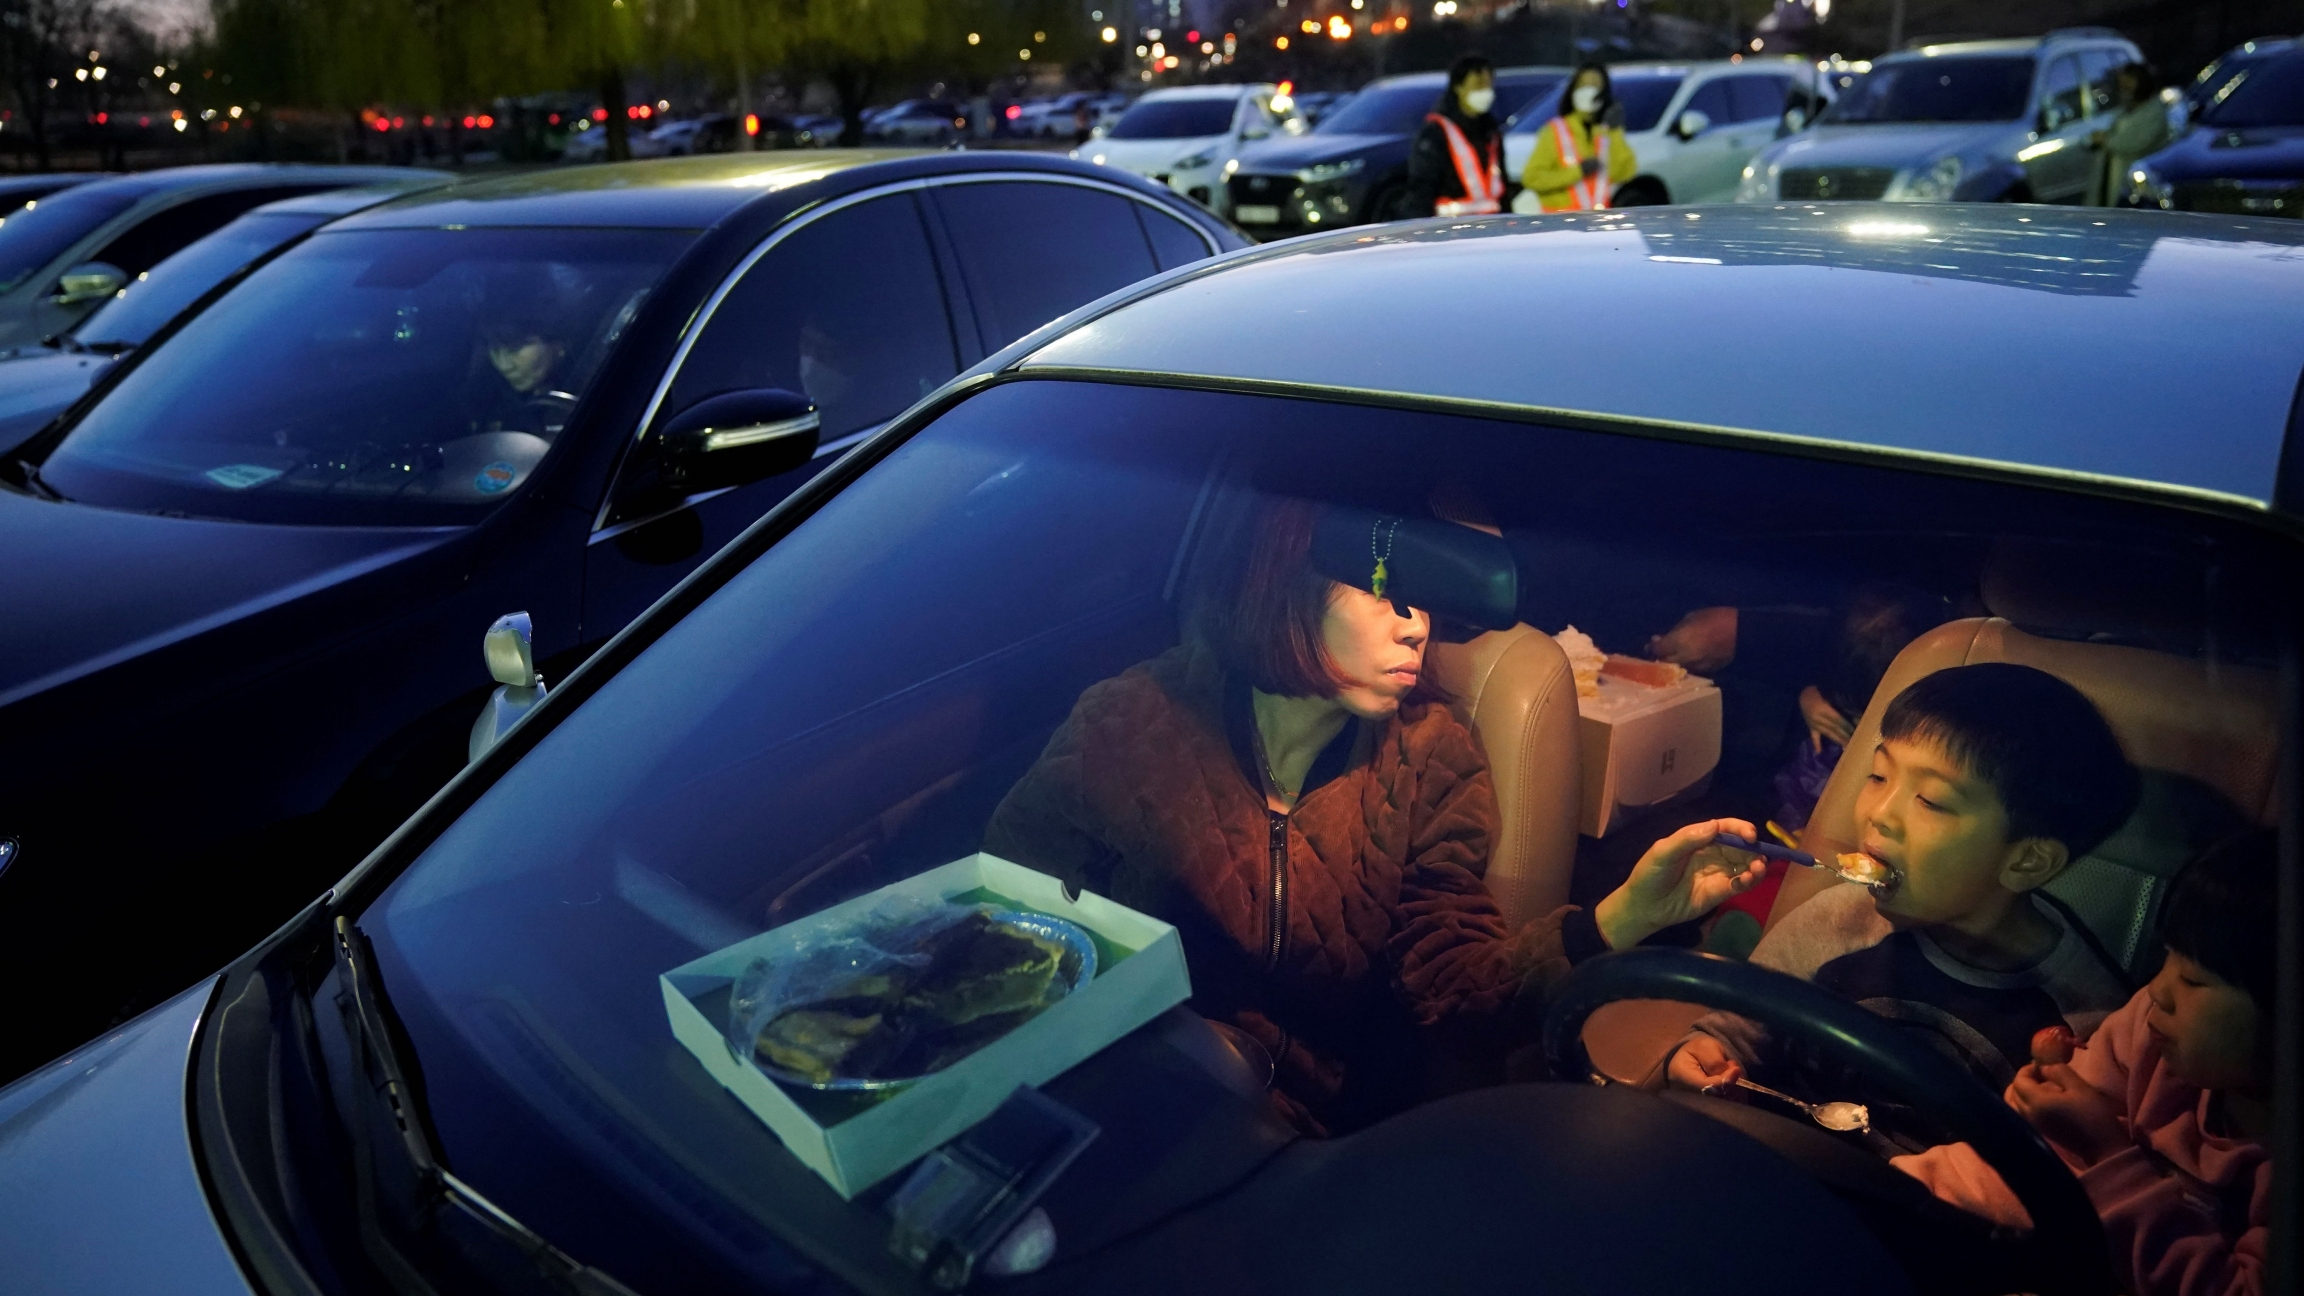 A woman feeds her child as they prepare to watch a movie from their car at a temporary made drive-in theater while keeping social distancing following the outbreak of the coronavirus disease (COVID-19), in Seoul, South Korea, March 27, 2020.